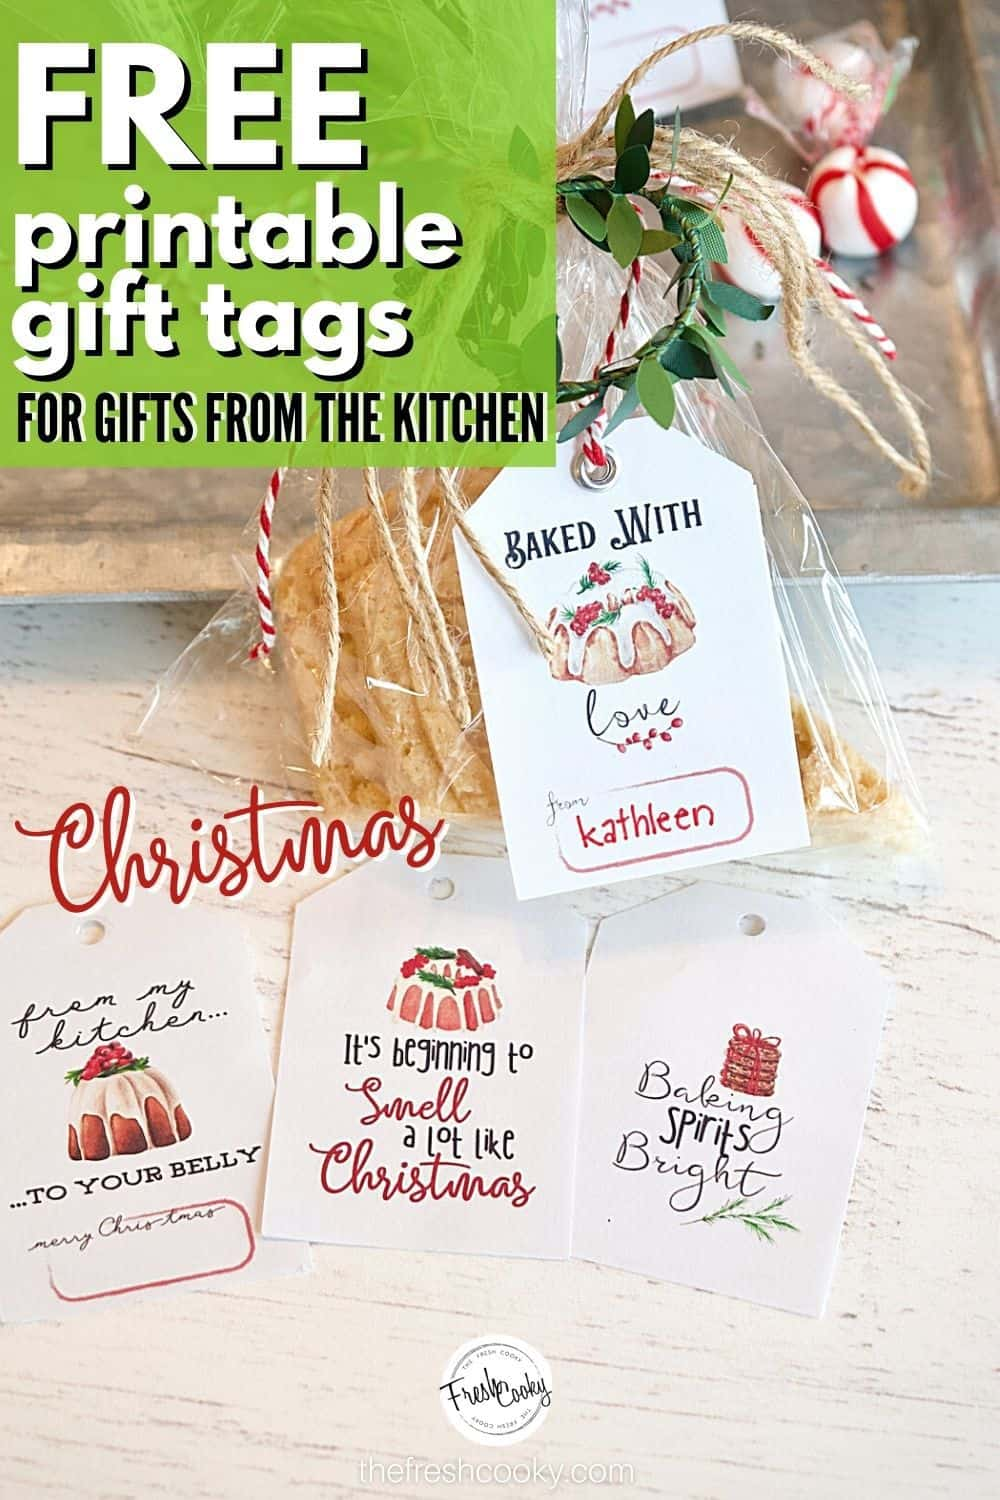 Beautiful and FREE printable Christmas gift tags for all of your baked goods, food gifts and more! #thefreshcooky #christmasgifttags #fromthekitchenof via @thefreshcooky